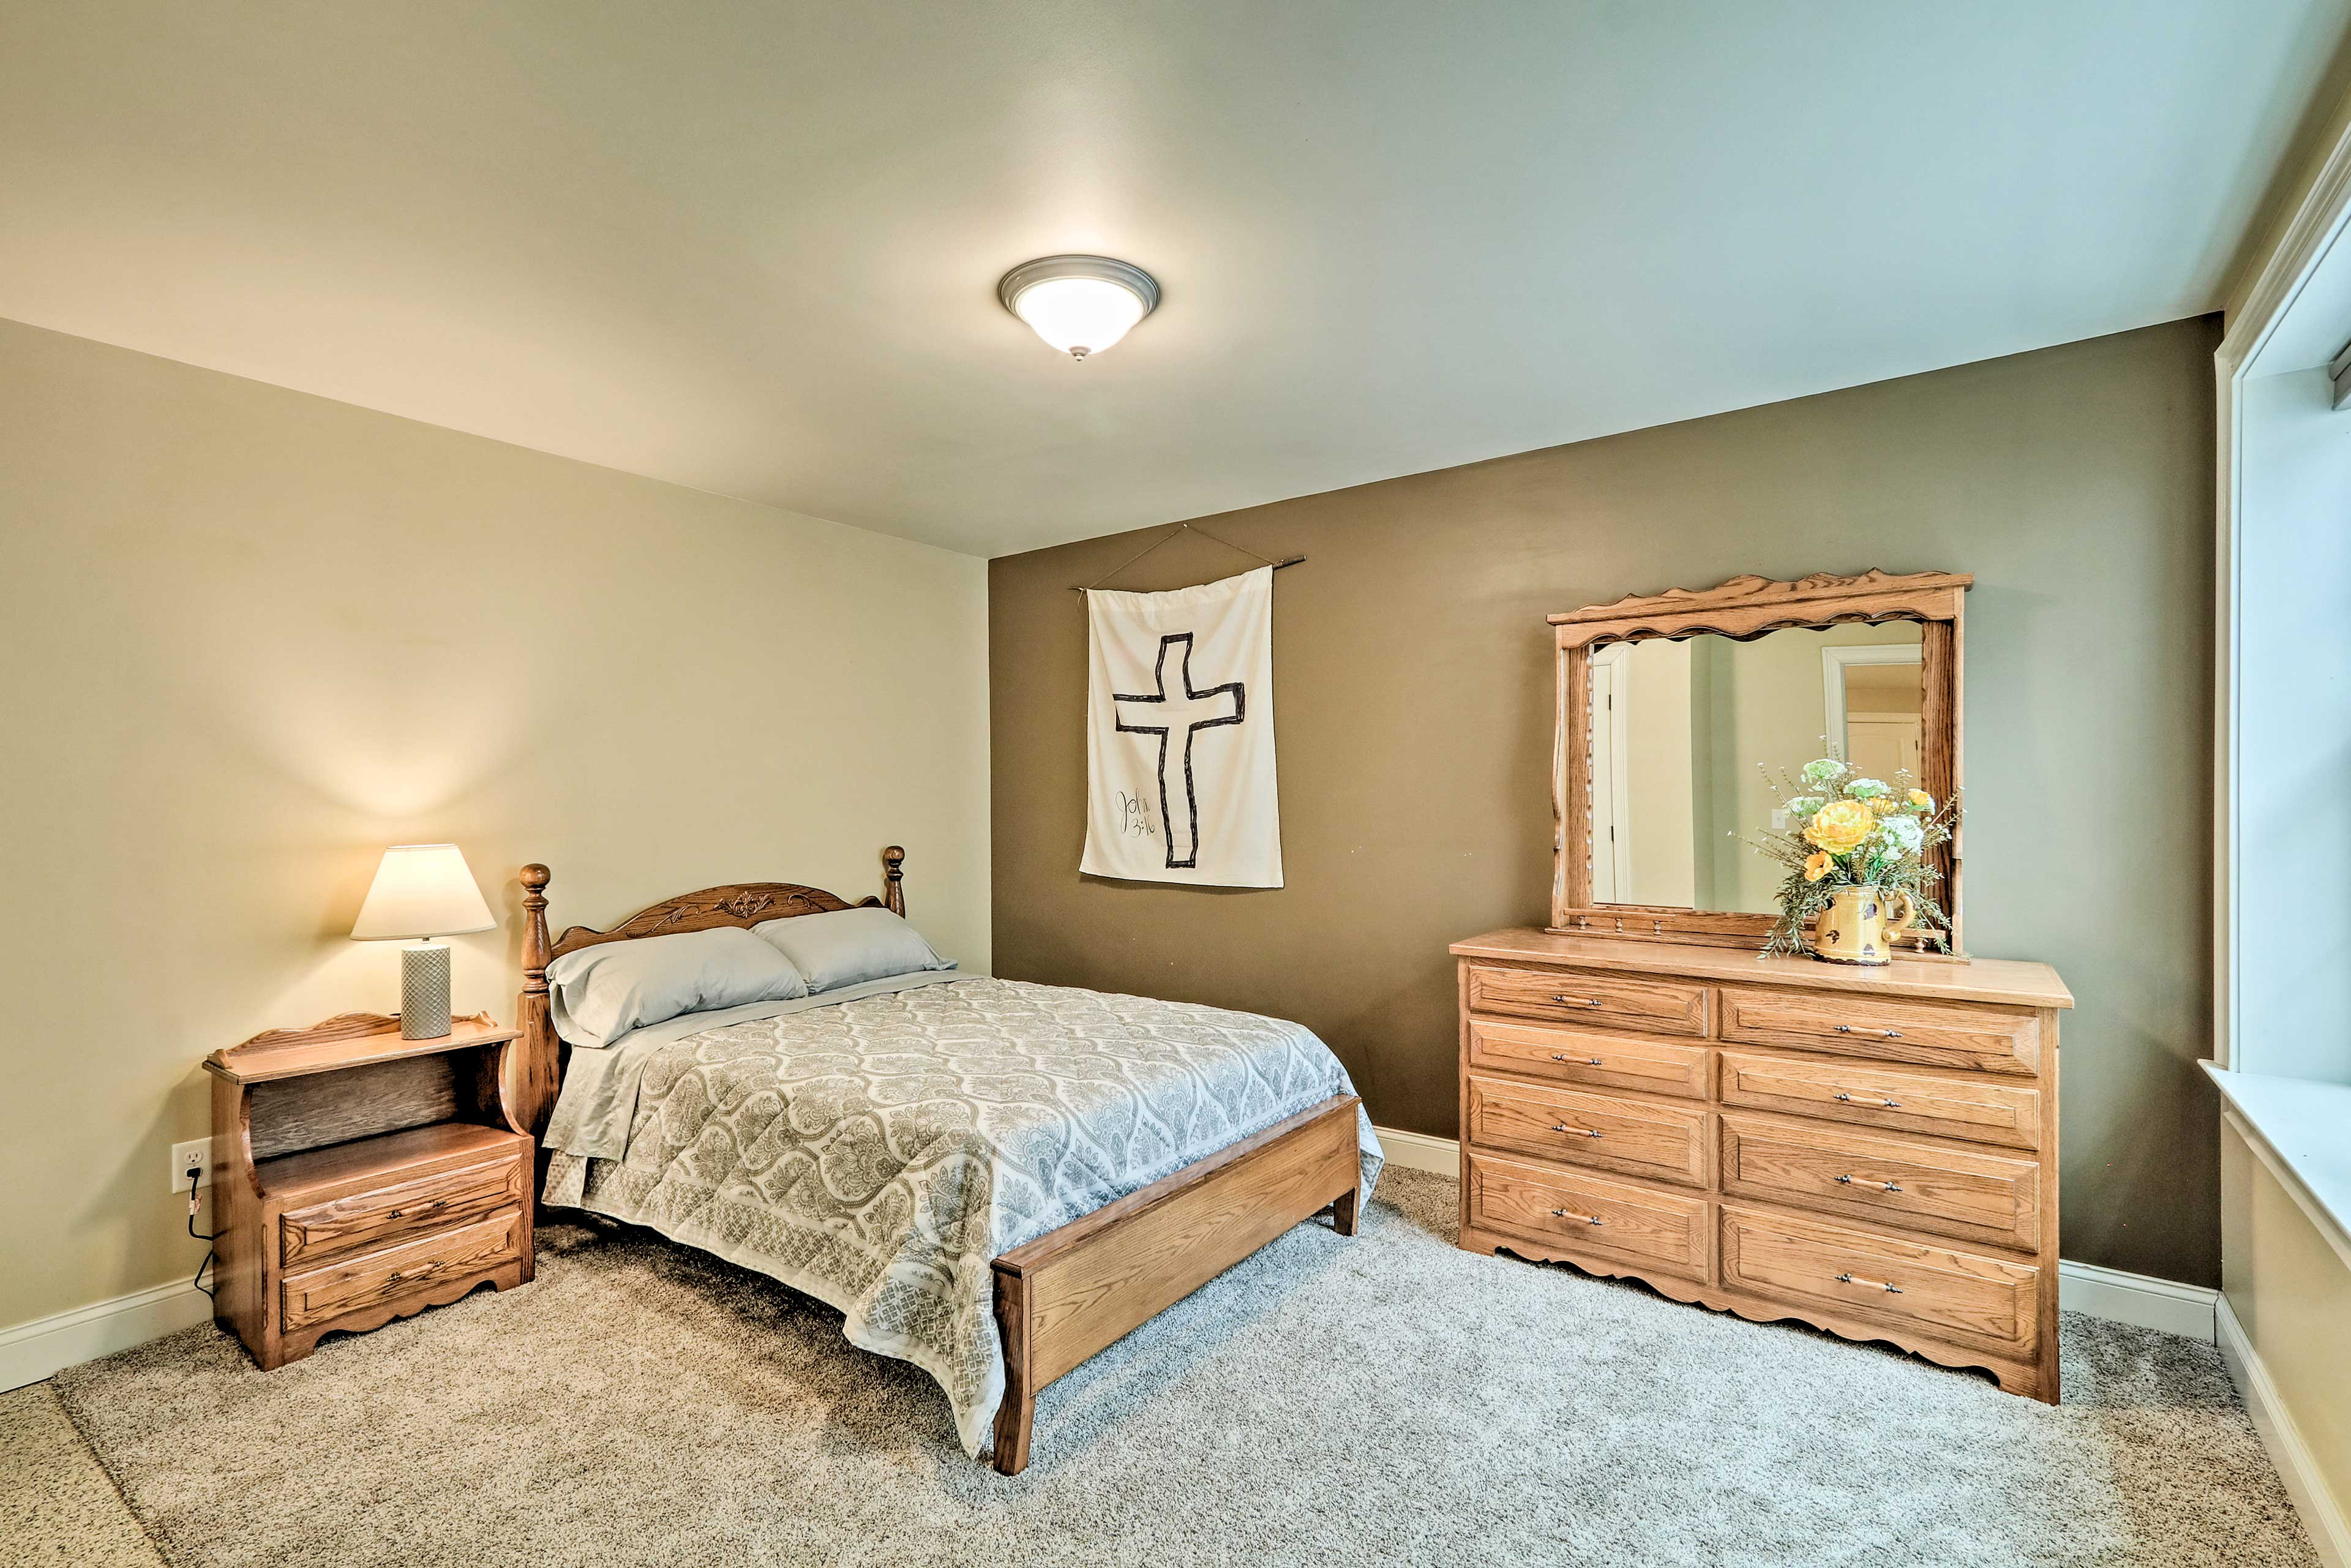 The 4th bedroom also features a full-sized bed and storage space.